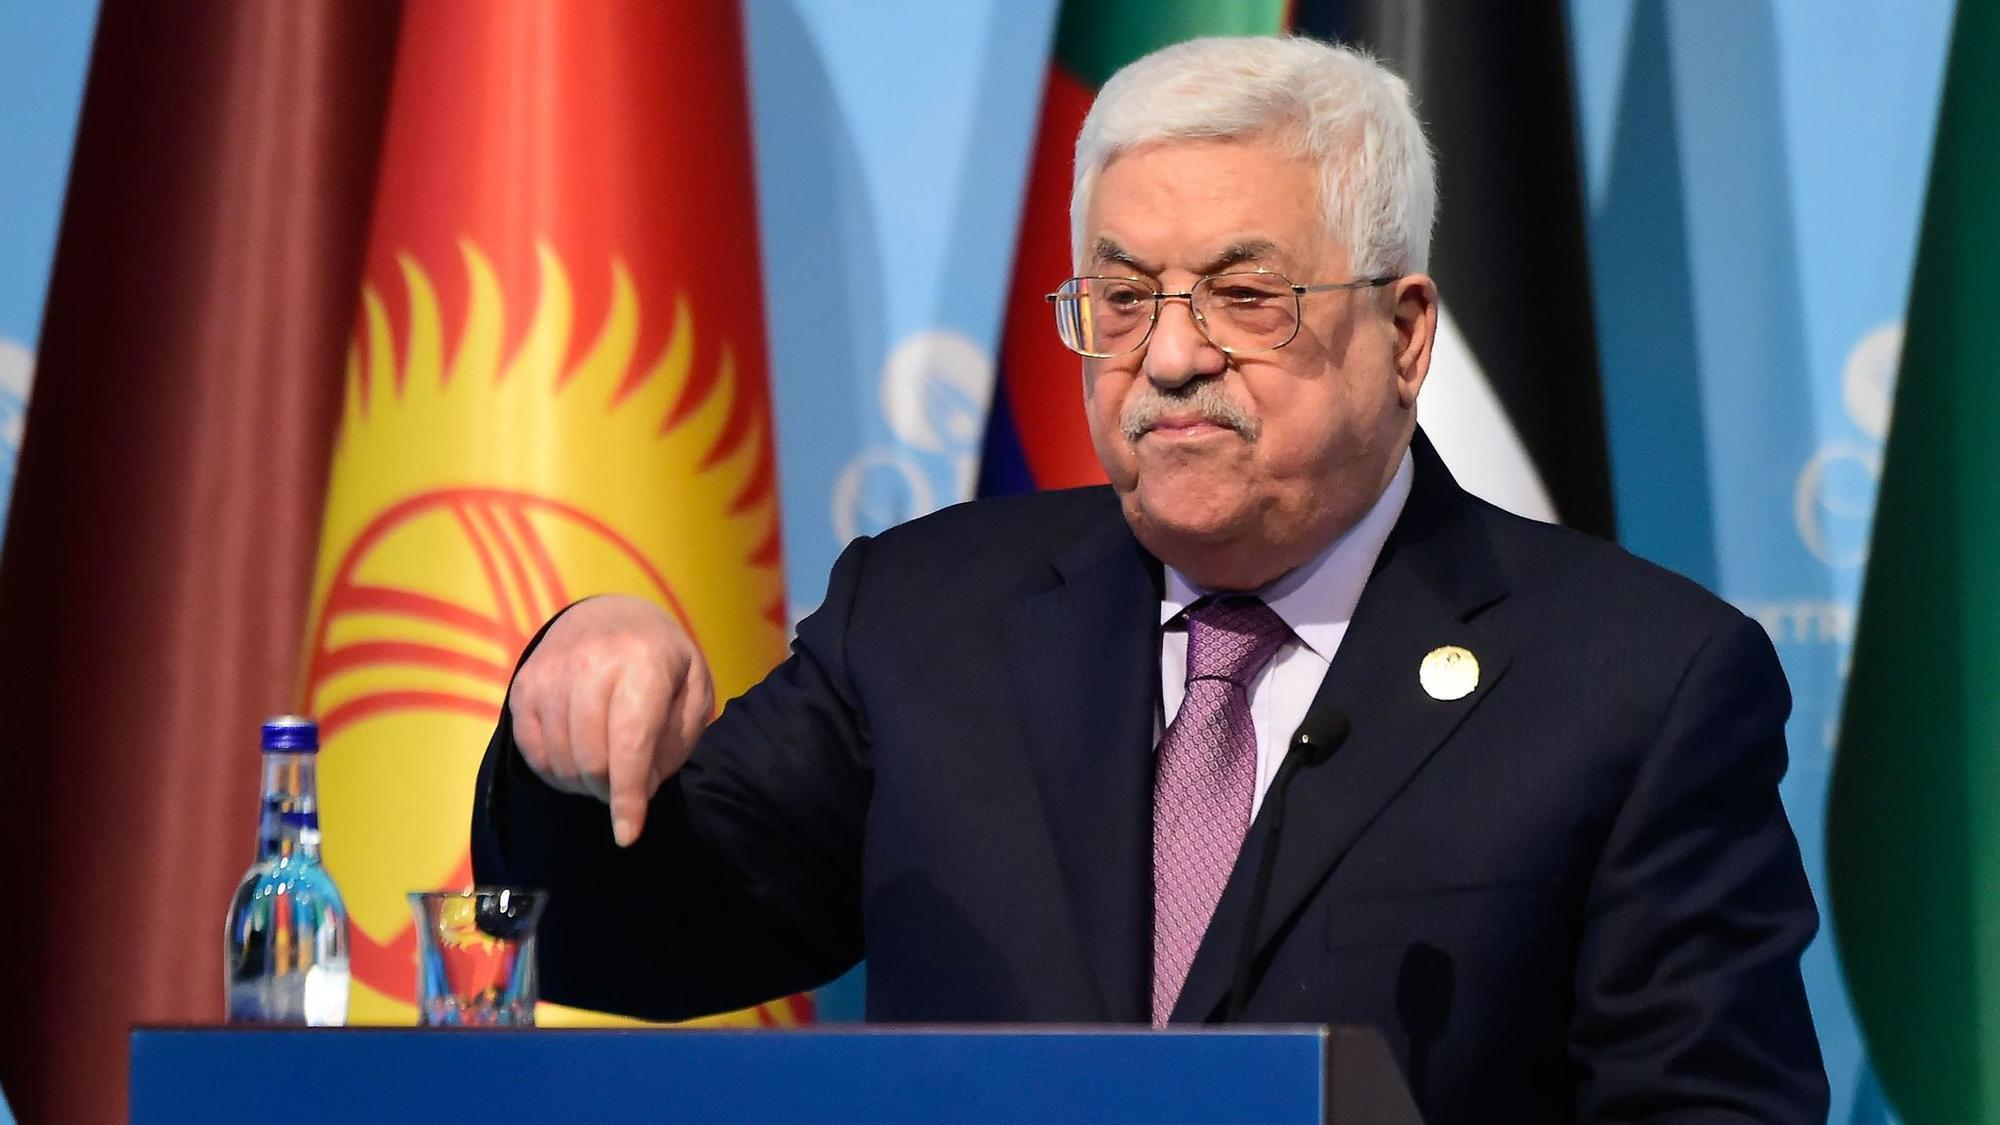 Palestinians no longer see role for U.S. in peace process, Abbas says